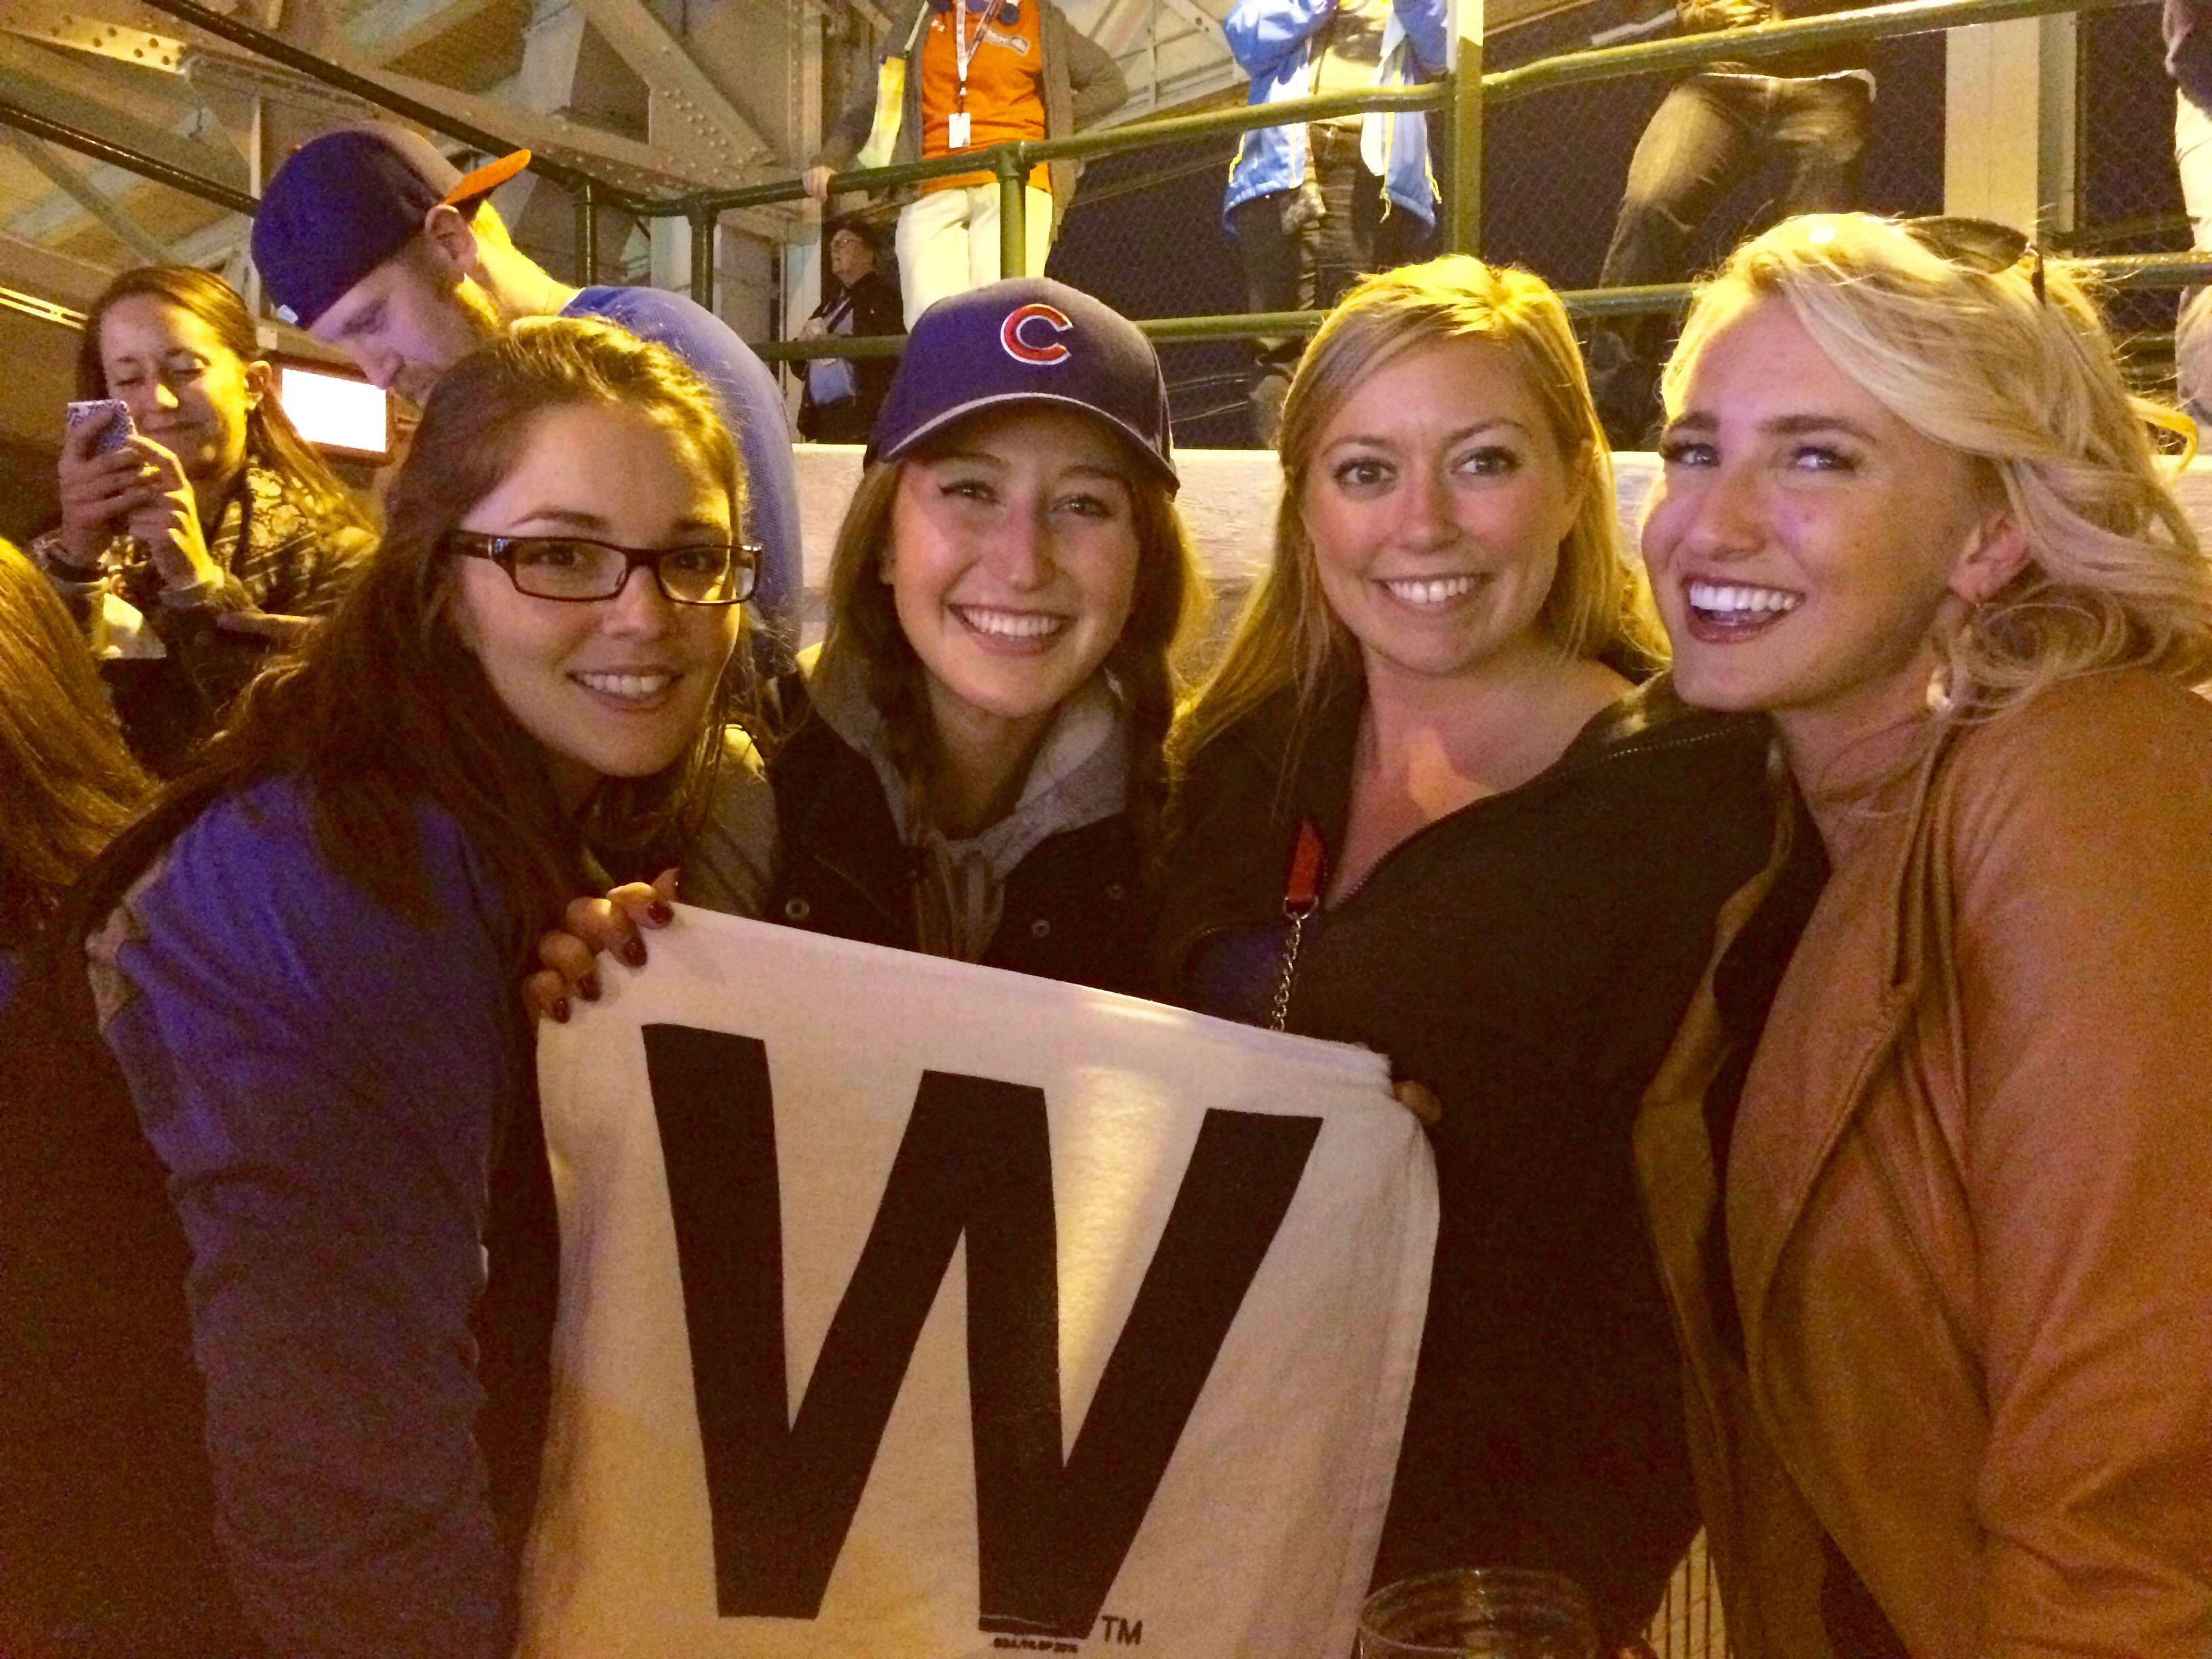 Gail Jankowski (3L), me, Emily Houtsma (3L) and Kelly Cannon (3L) cheering on the Cubs at Wrigley during game 4 against the Cardinals!